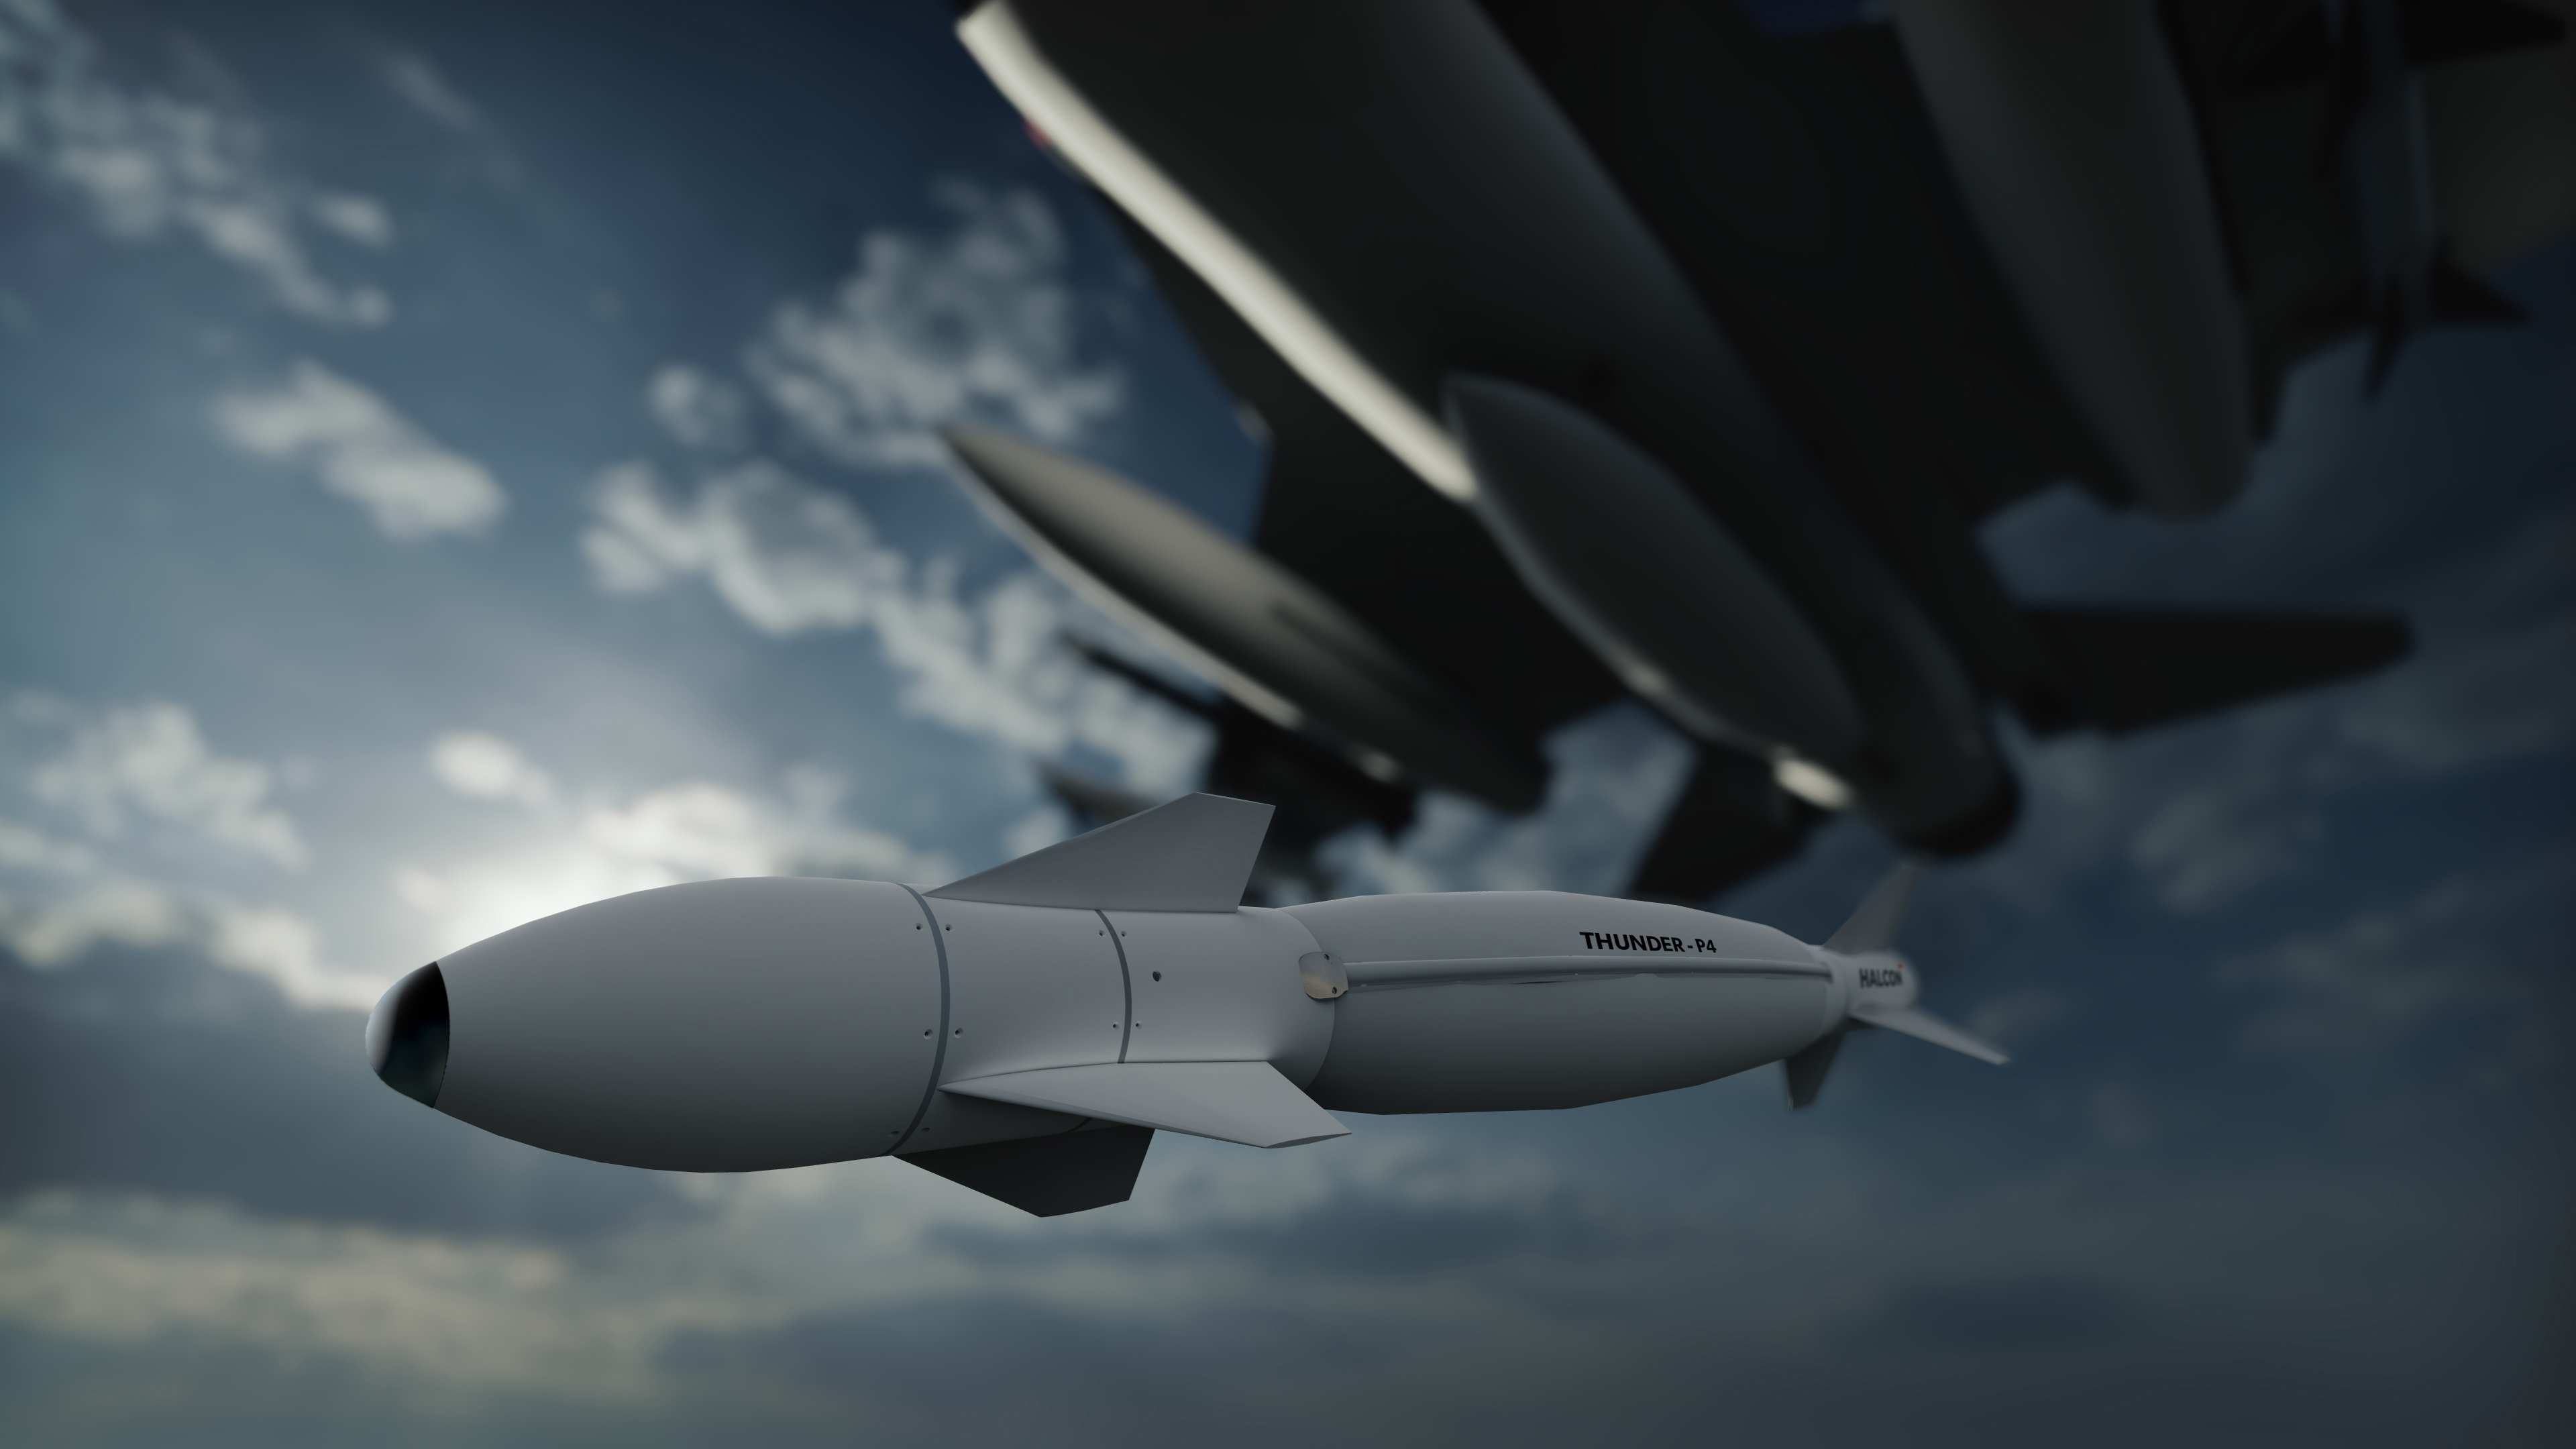 Thunder precision guided munitions system